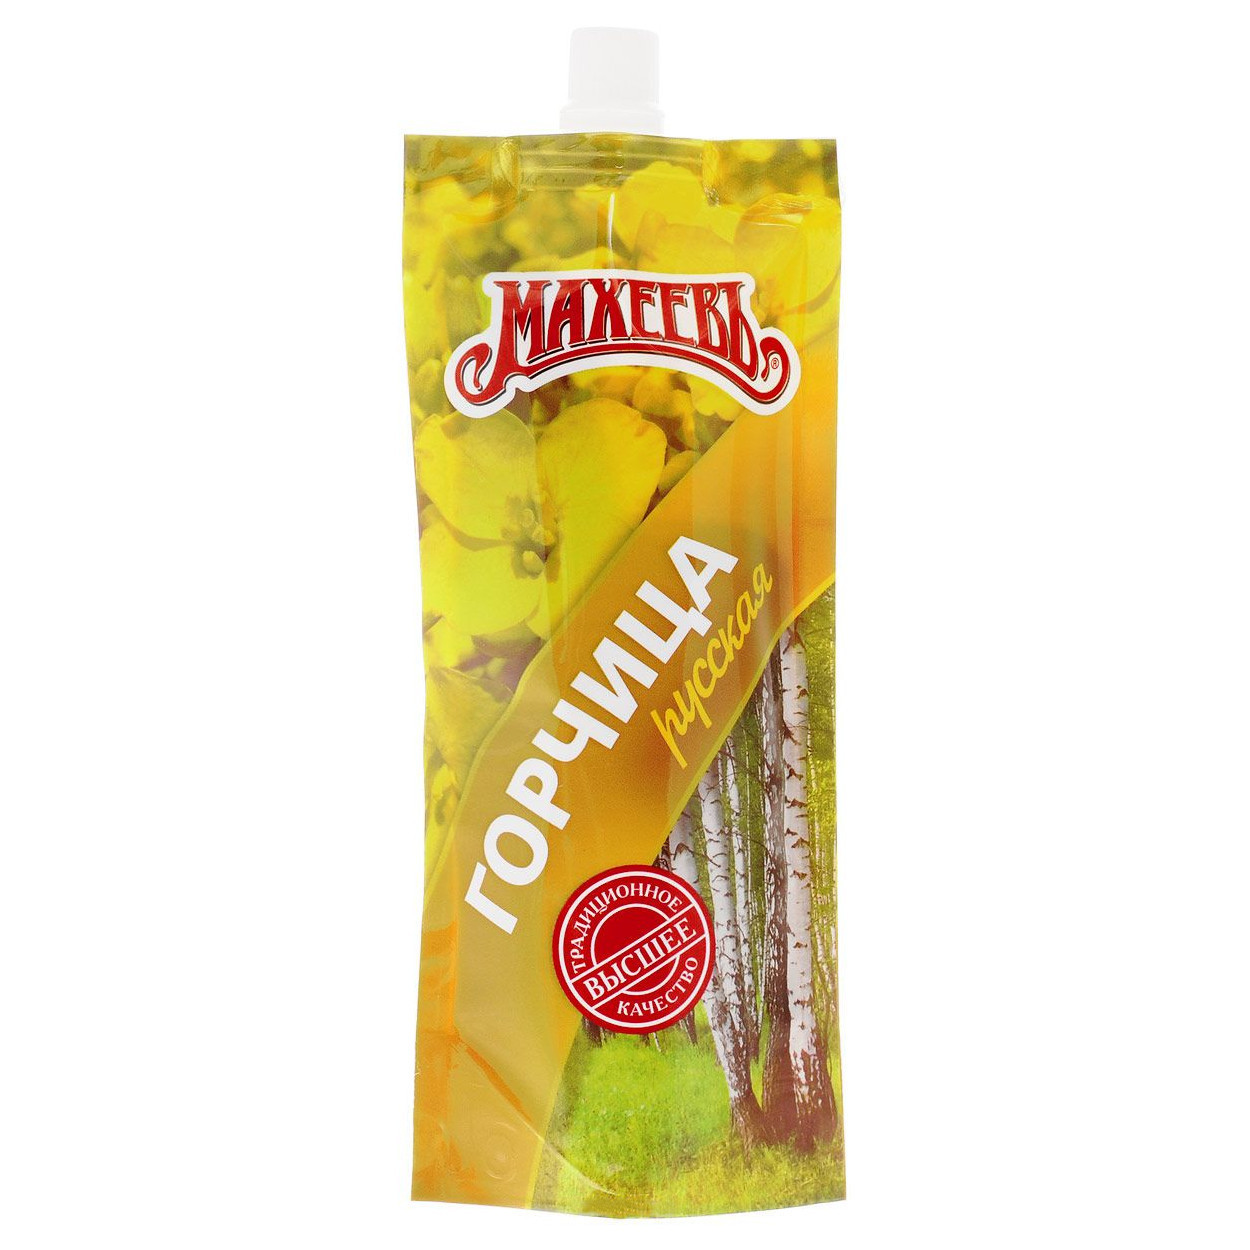 Maheev Russian Mustard (Soft Pack), 4.93 oz / 140 g